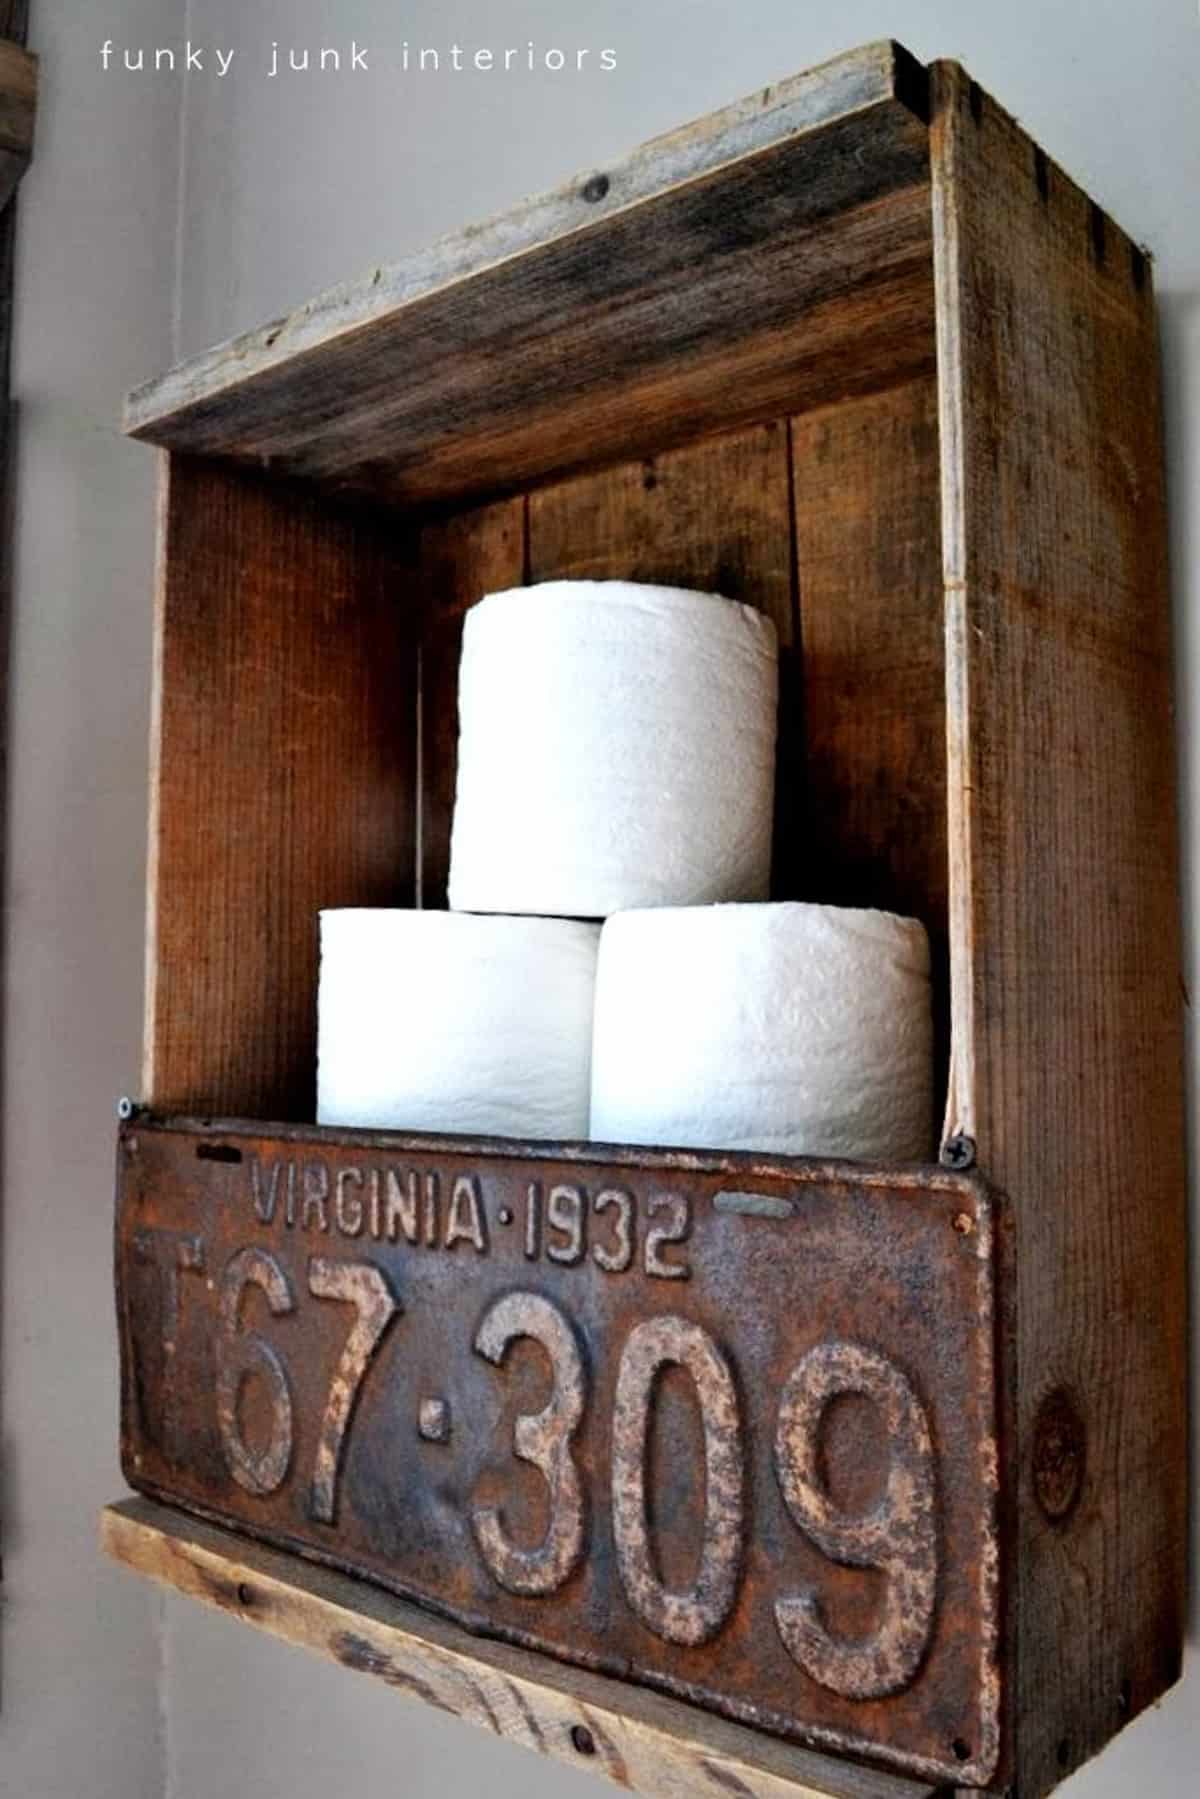 Rustic Toilet Paper Holder with License Plate